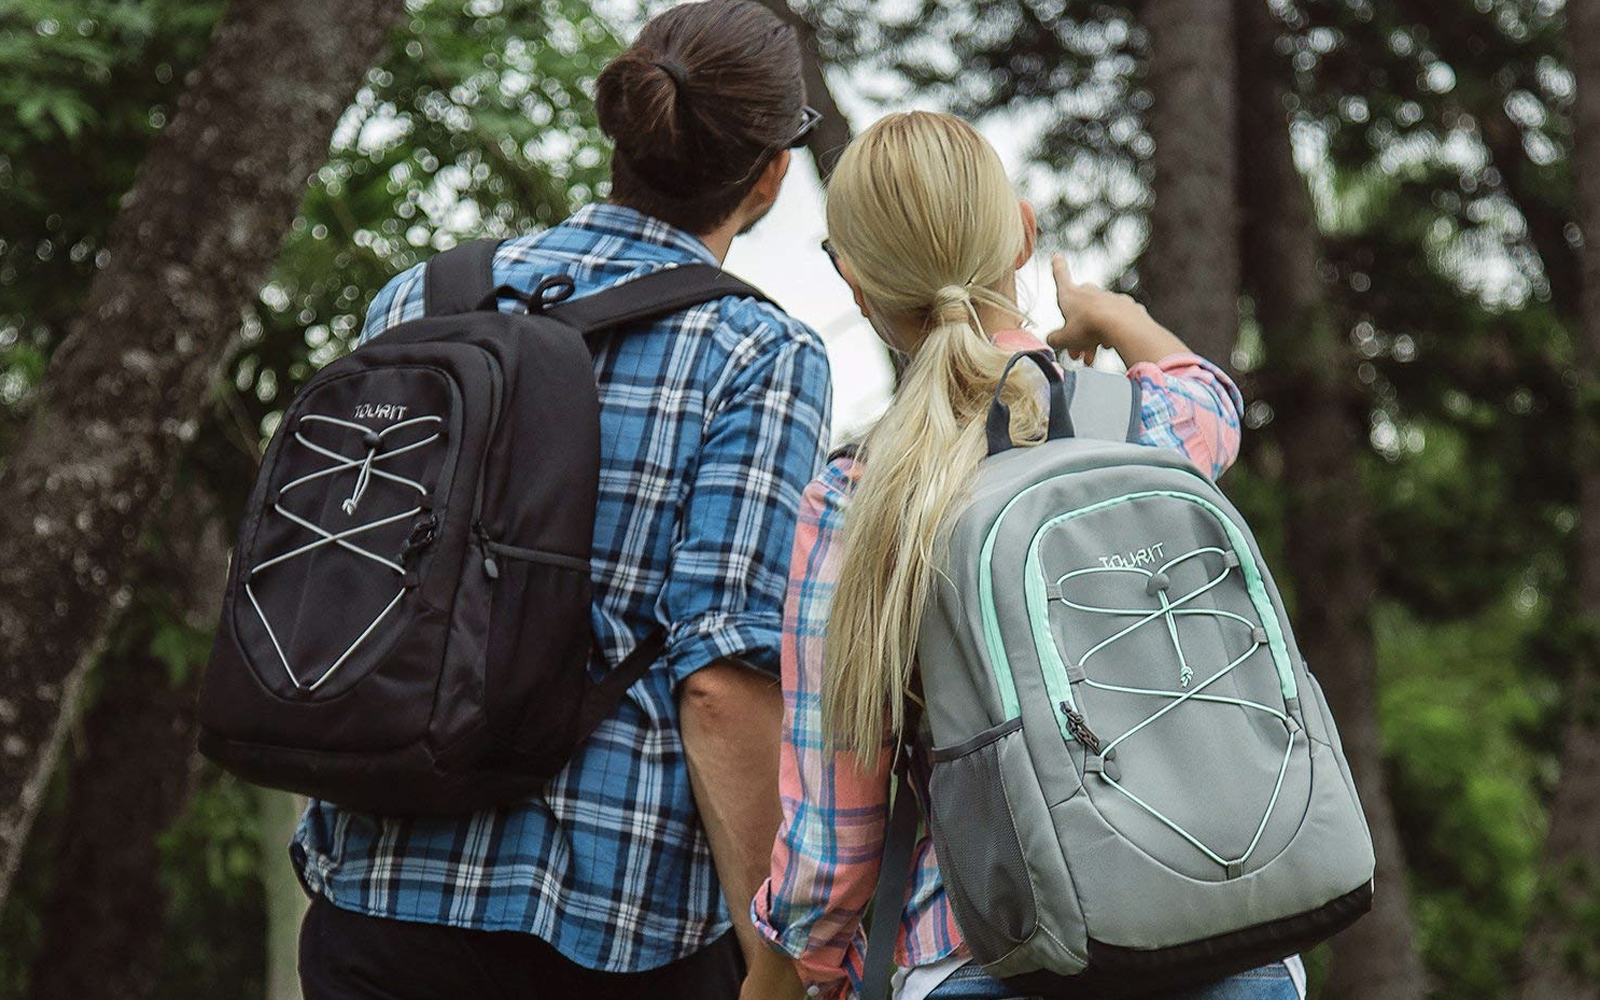 TOURIT Insulated Cooler Backpack